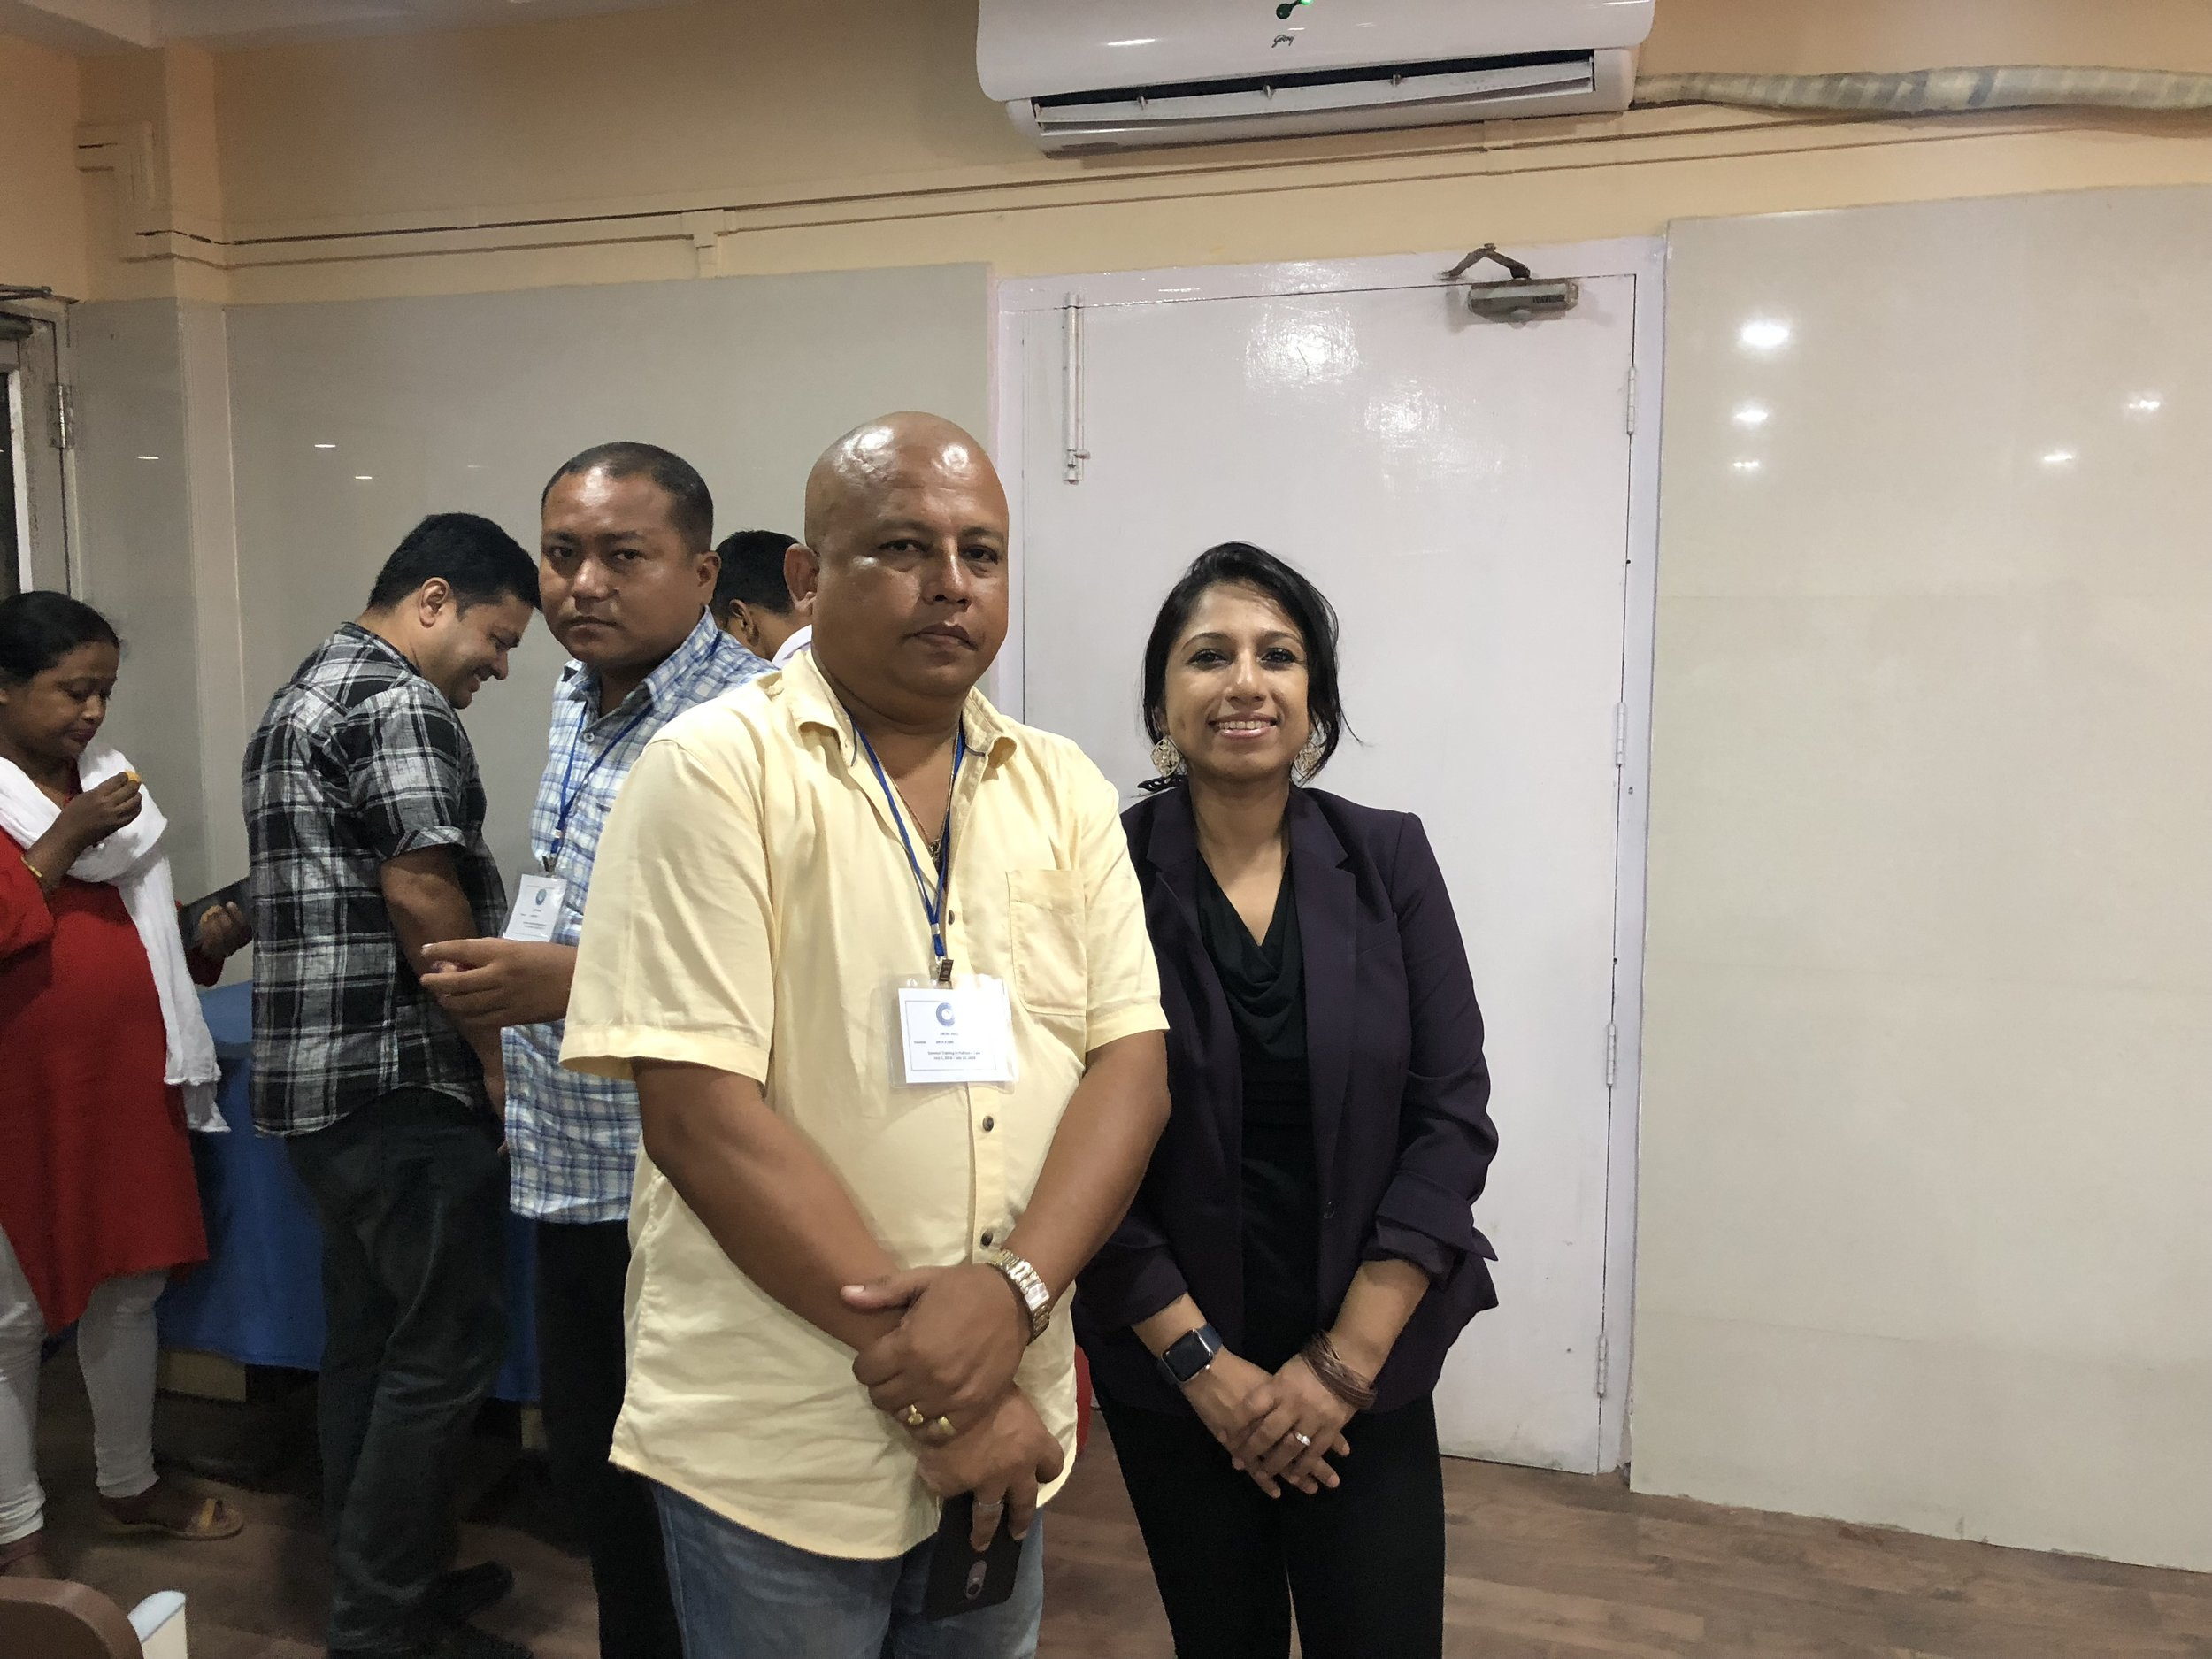 Thanks to Dr. H. K Das, Assistant Director (Public Health), ICMR (Indian Council of Medical Research) RMRC, NE Region, MoHFW, Govt of India, Dibrugar, Assam for coming forward and inviting me to ICMR, Dibrugarh on 20th July, 2018 to present and collaborate. Sincerely appreciate!